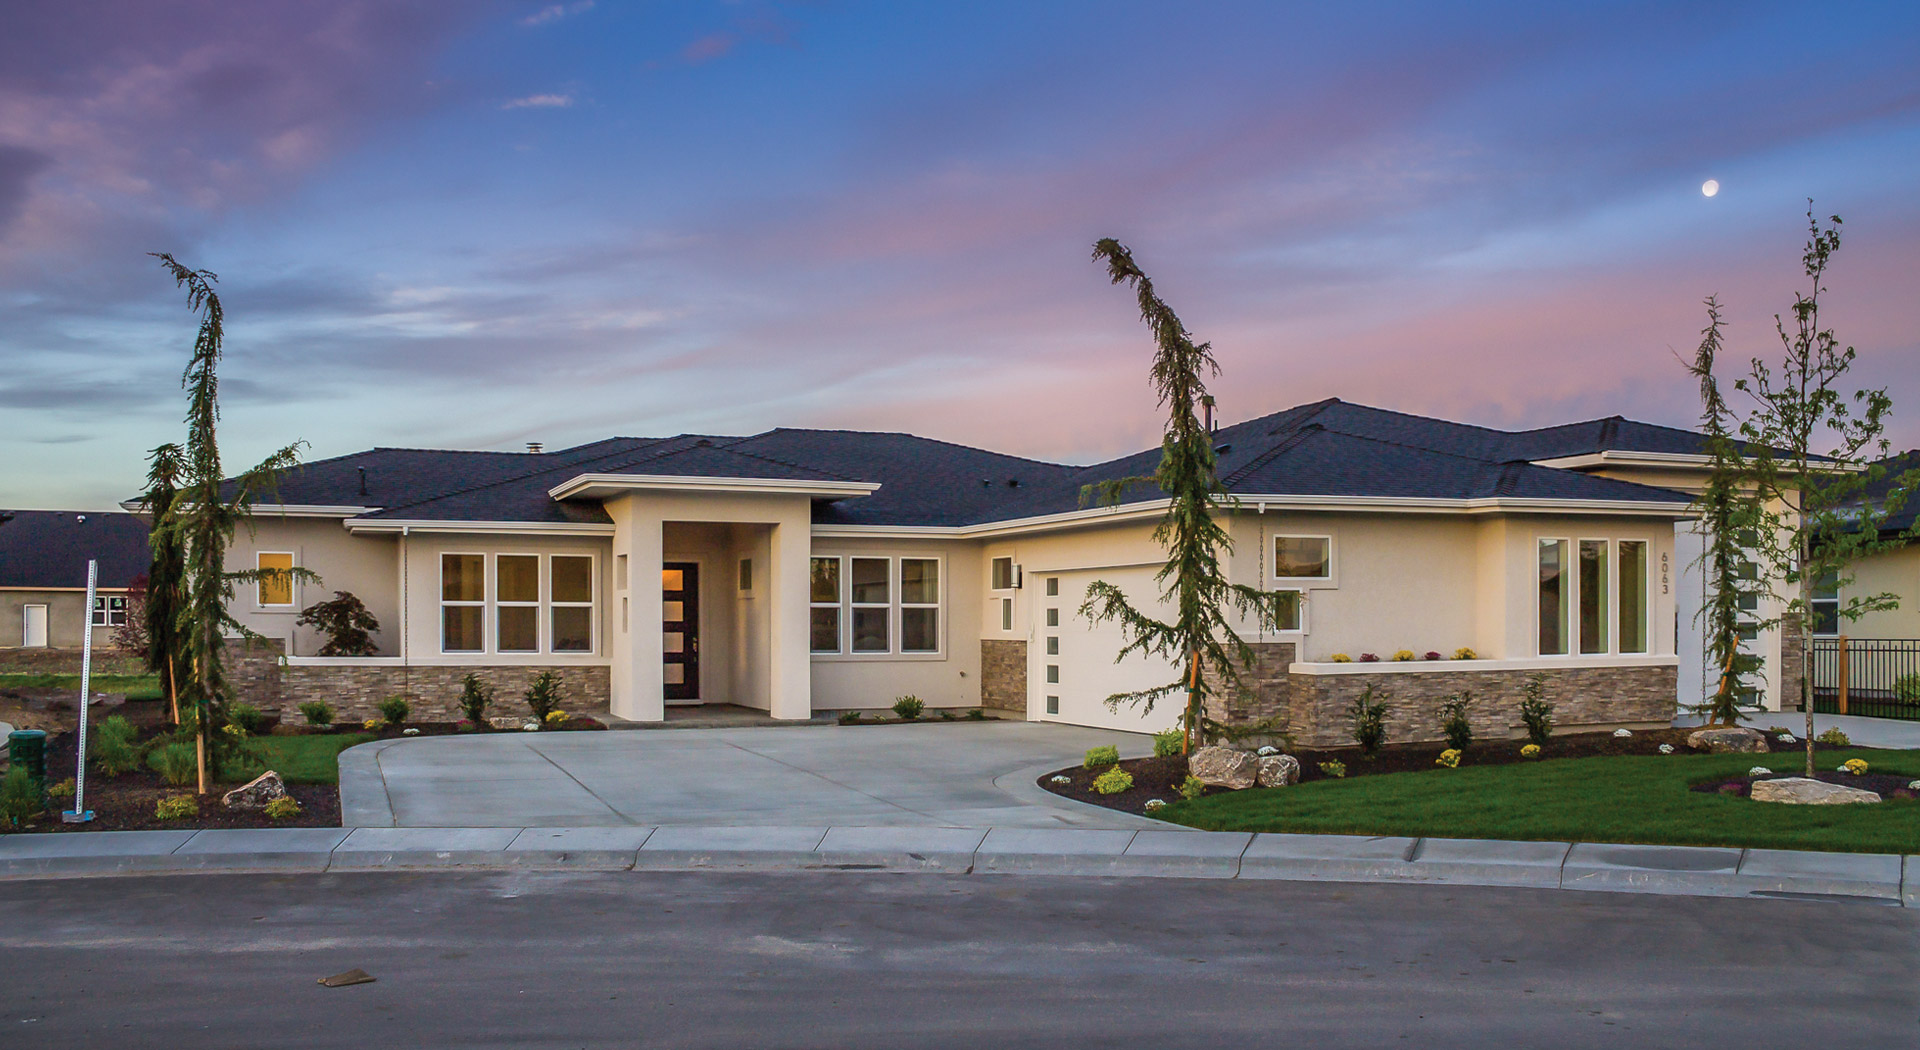 Boise Idaho's Ultimate Home Search: Home's For Sale + Eagle Real Estate